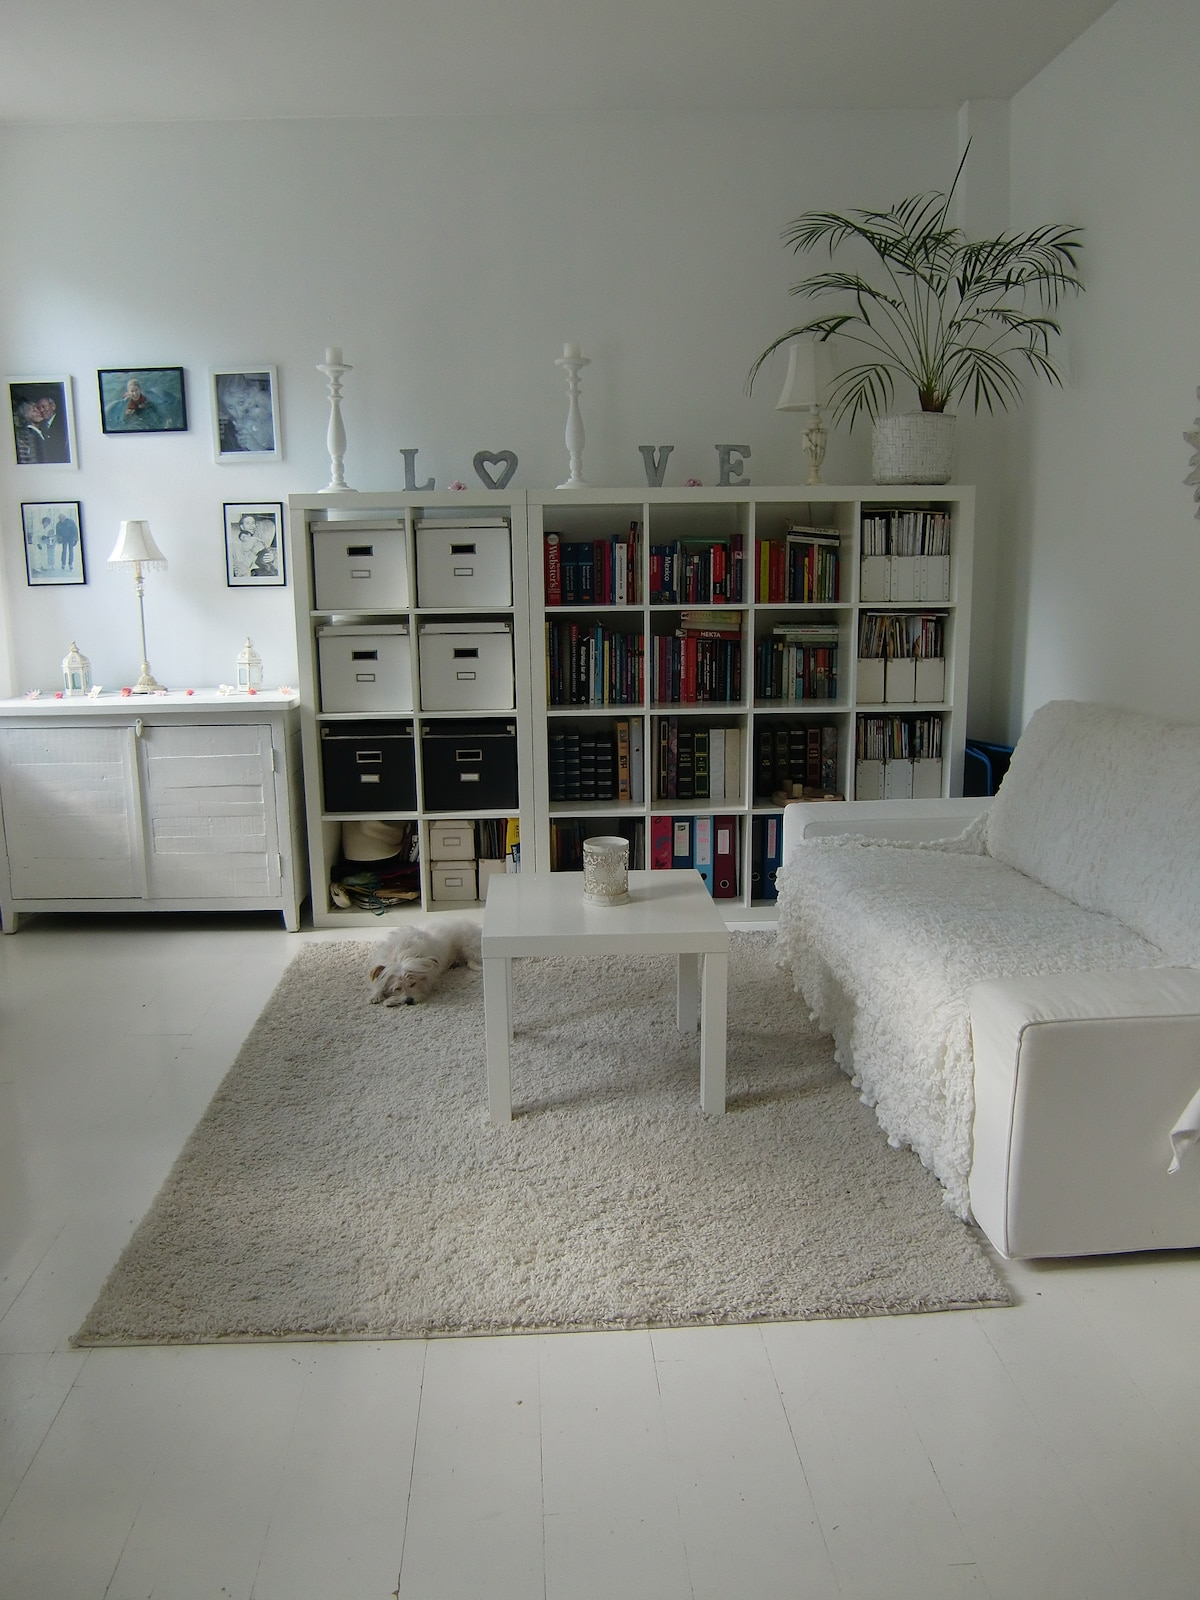 Livingroom. I will put matresses on the floor and remove all pictures/personal belongings.